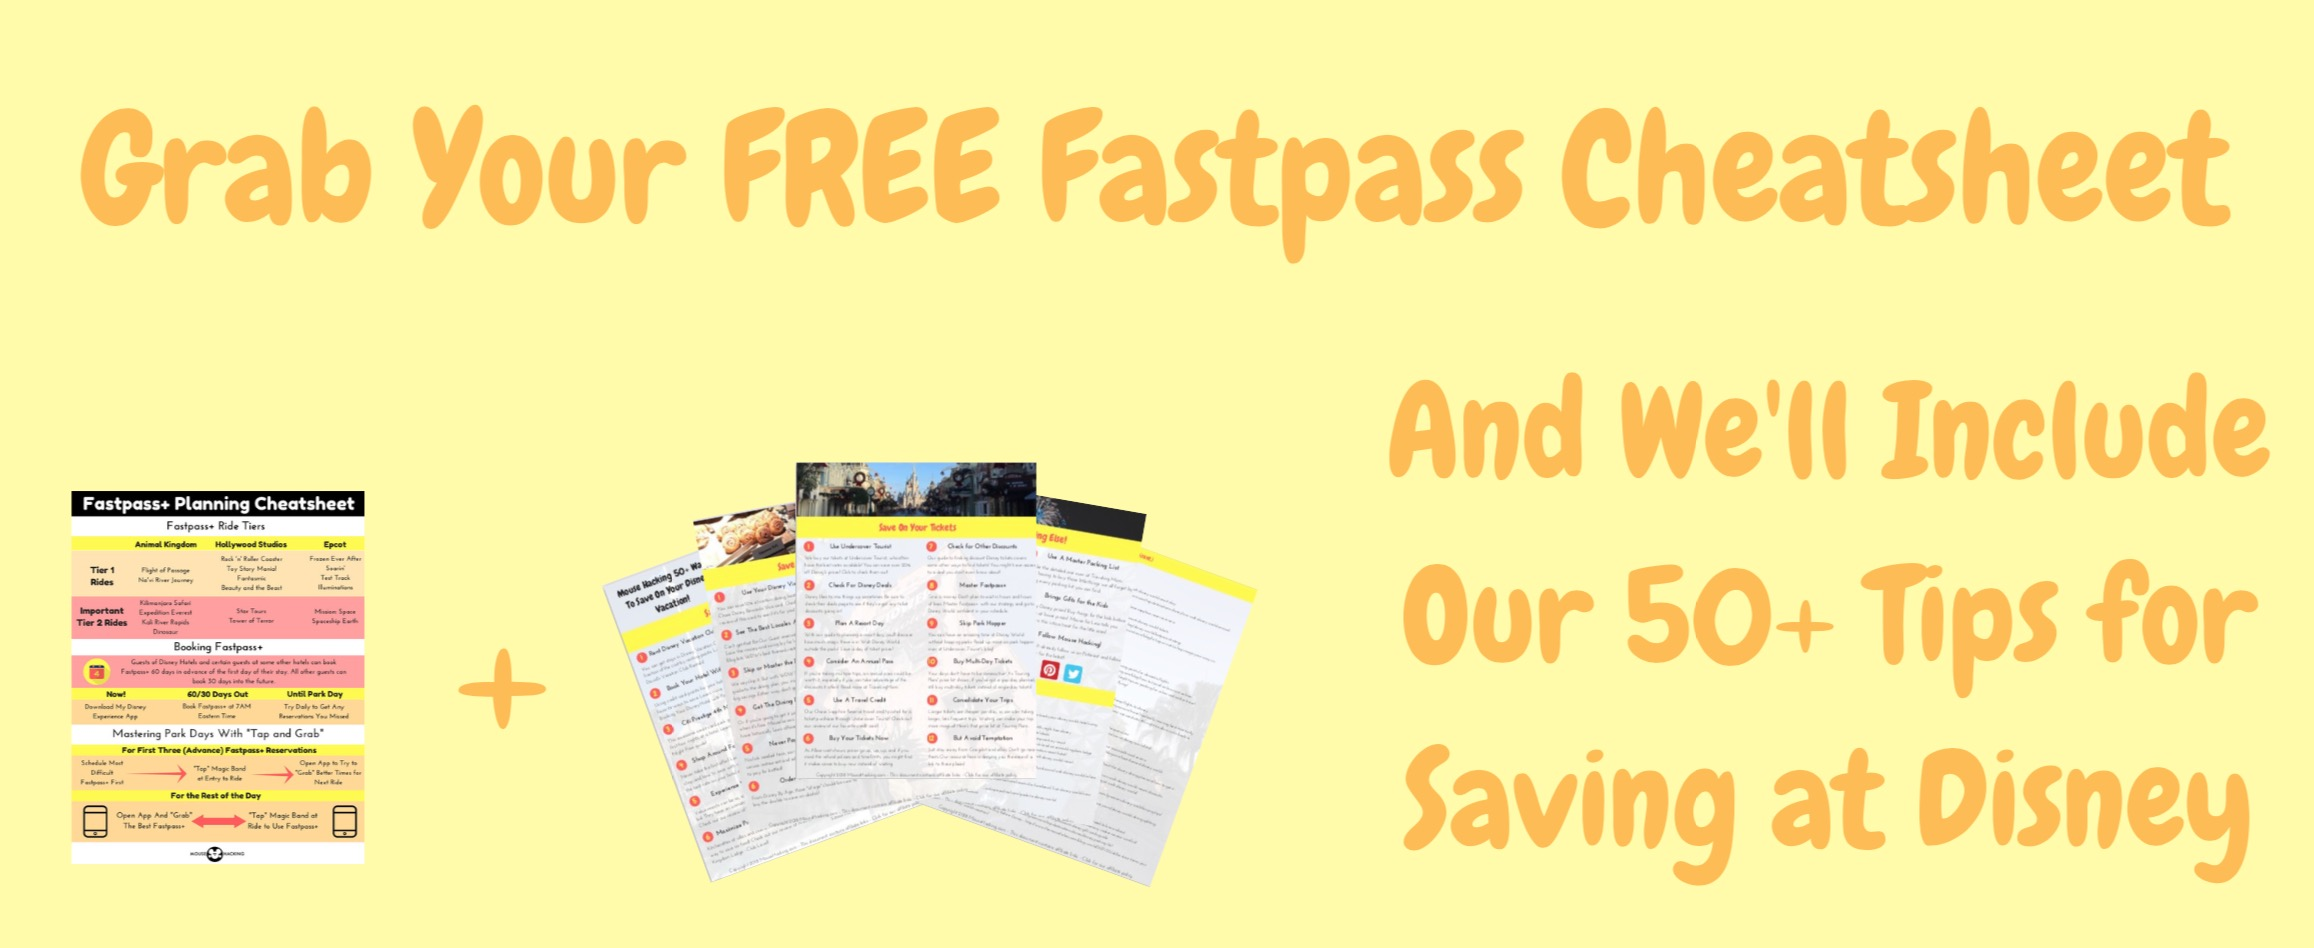 Best Fast Passes For Hollywood Studios 2019 Hollywood Studios FastPass+ Tiers And Strategy 2019   Mouse Hacking